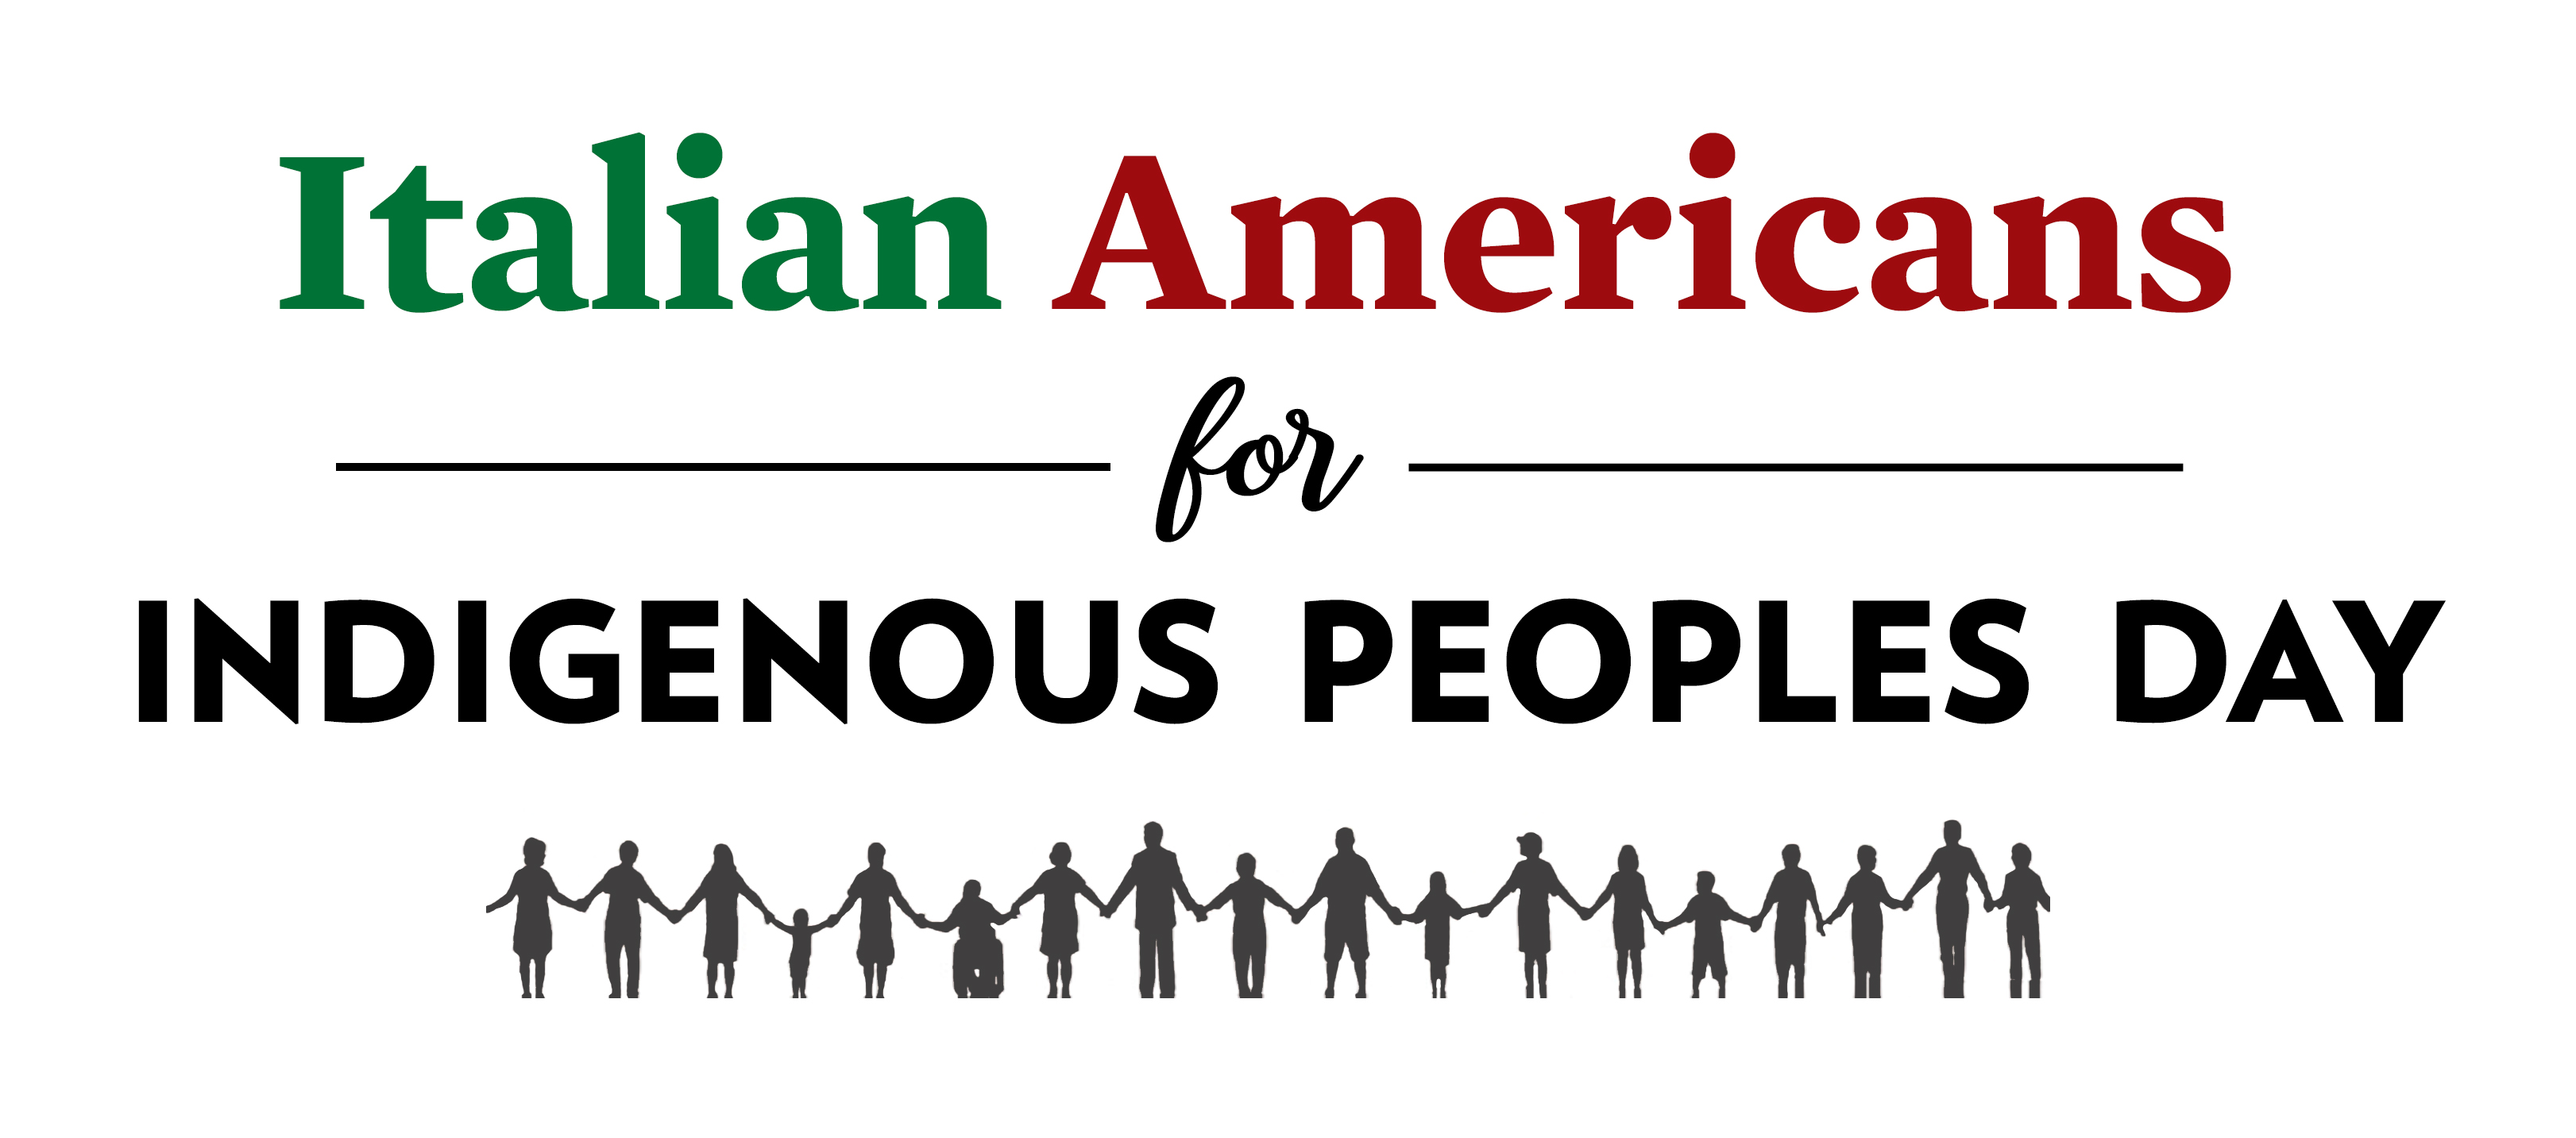 Italian Americans for Indigenous Peoples Day Call to Action!